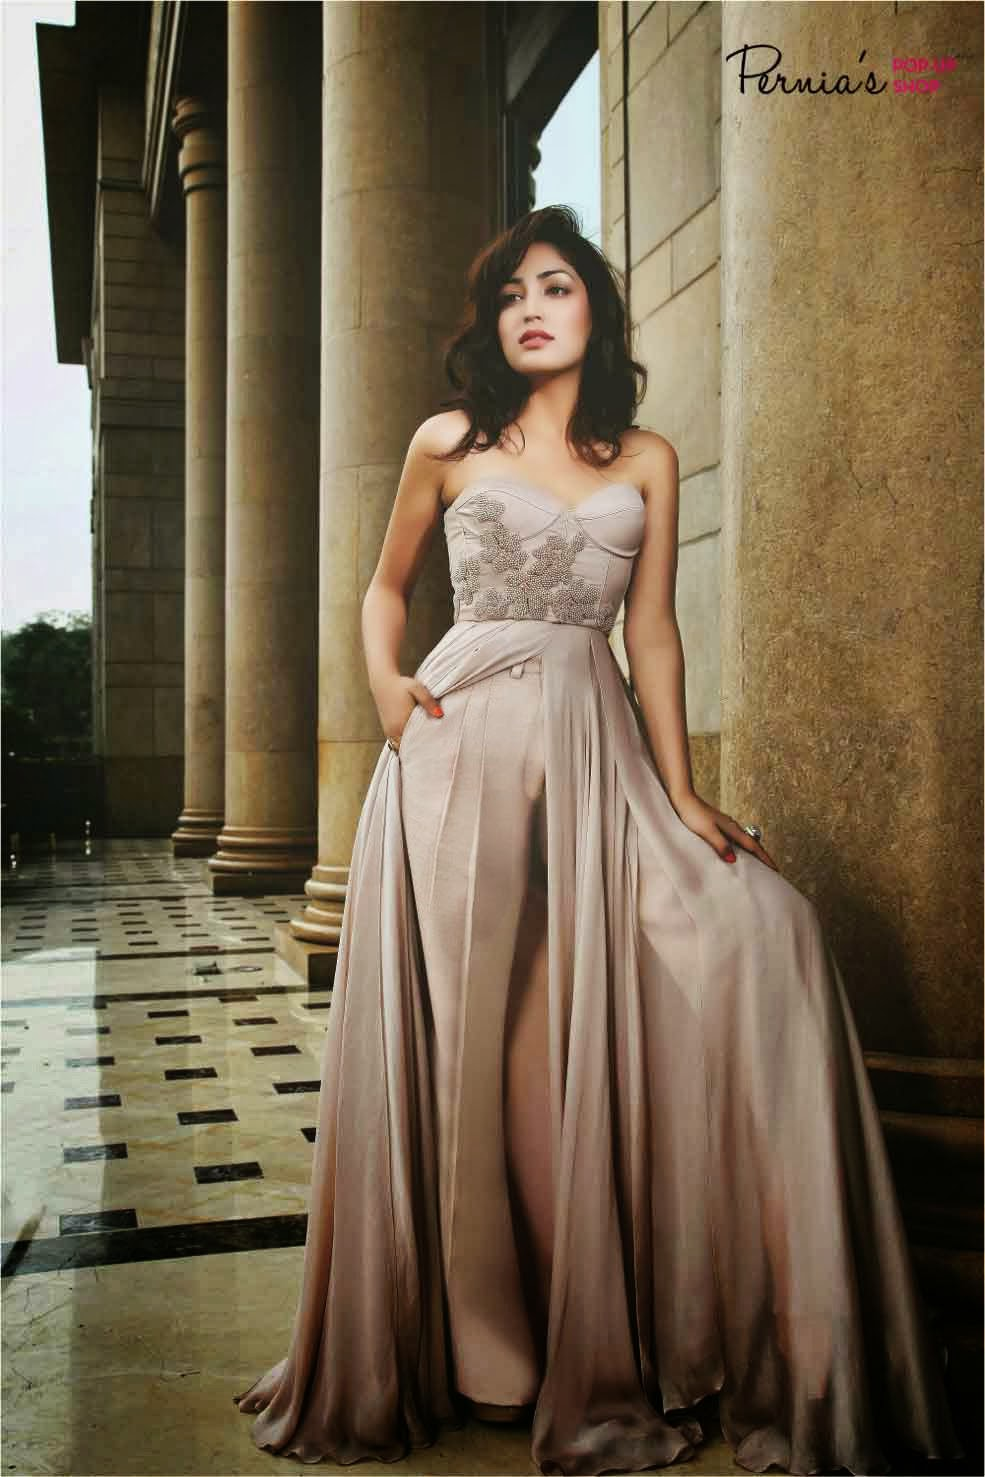 Yami Gautam's New Photo-shoot